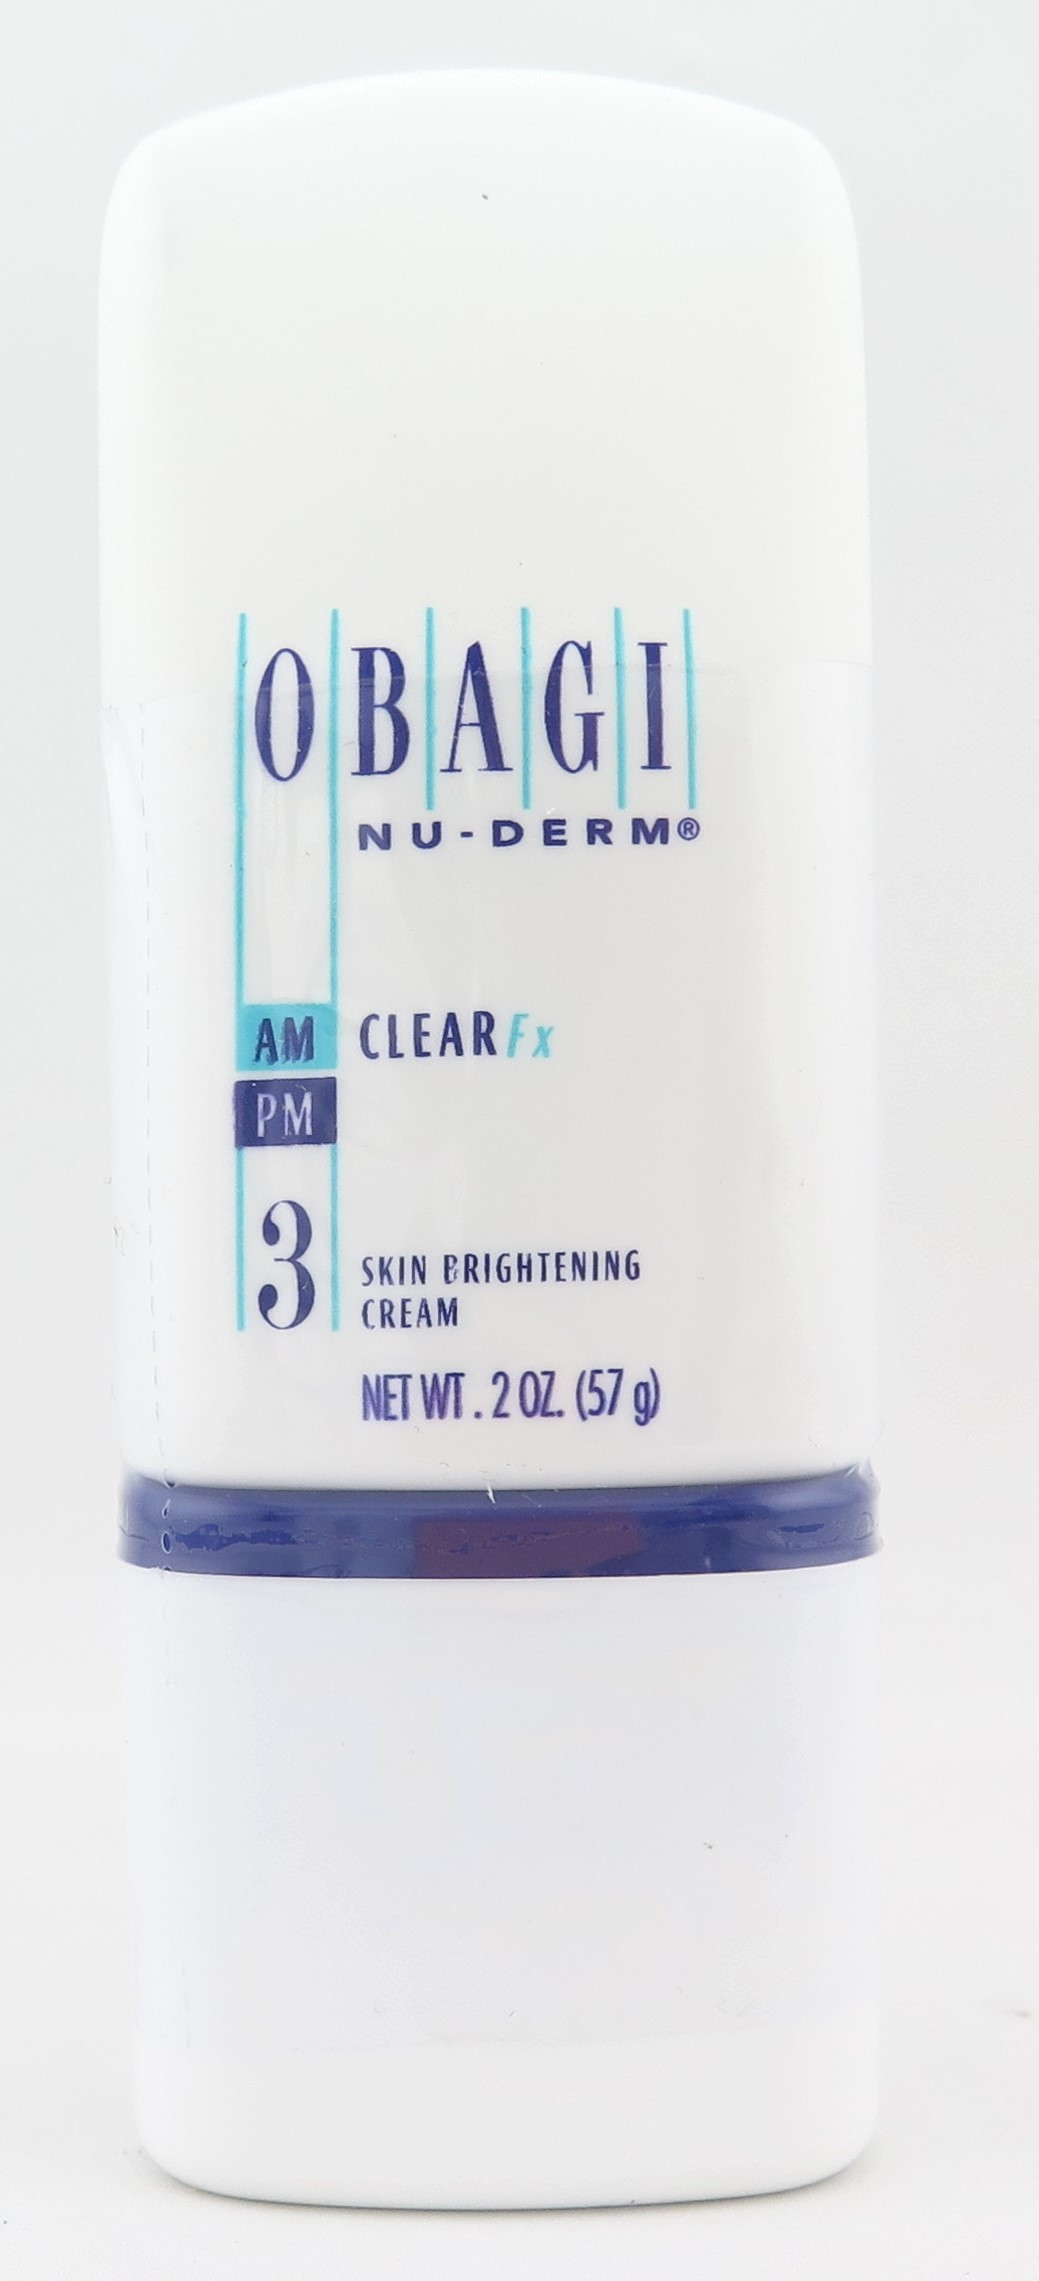 Obagi Nu-Derm Clear Fx Skin Brightening Cream 2 oz (57g)